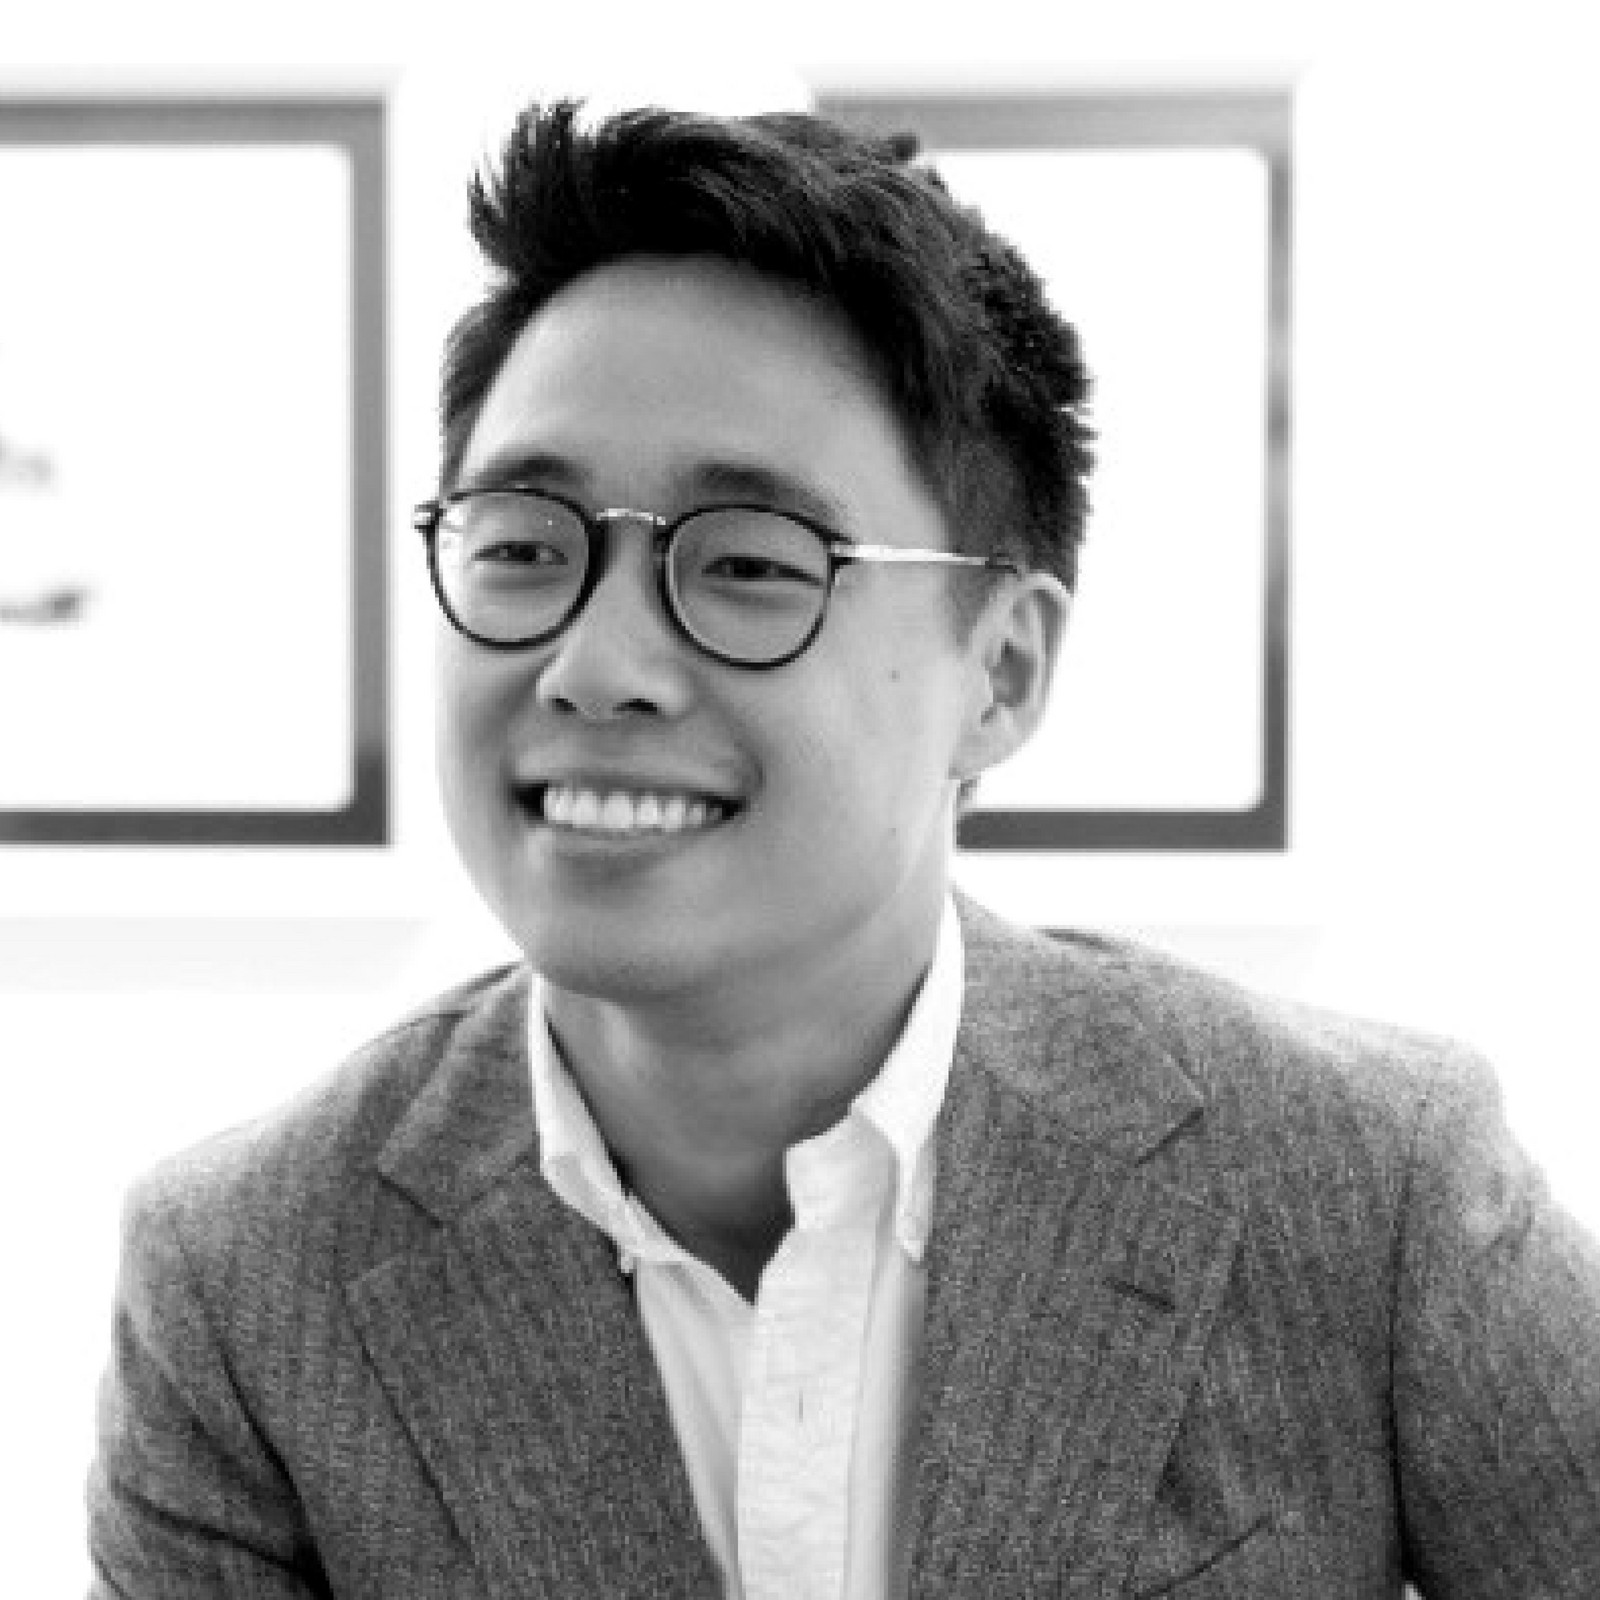 Michael Lee - Co-Founder & Director of Operations, Sndbox